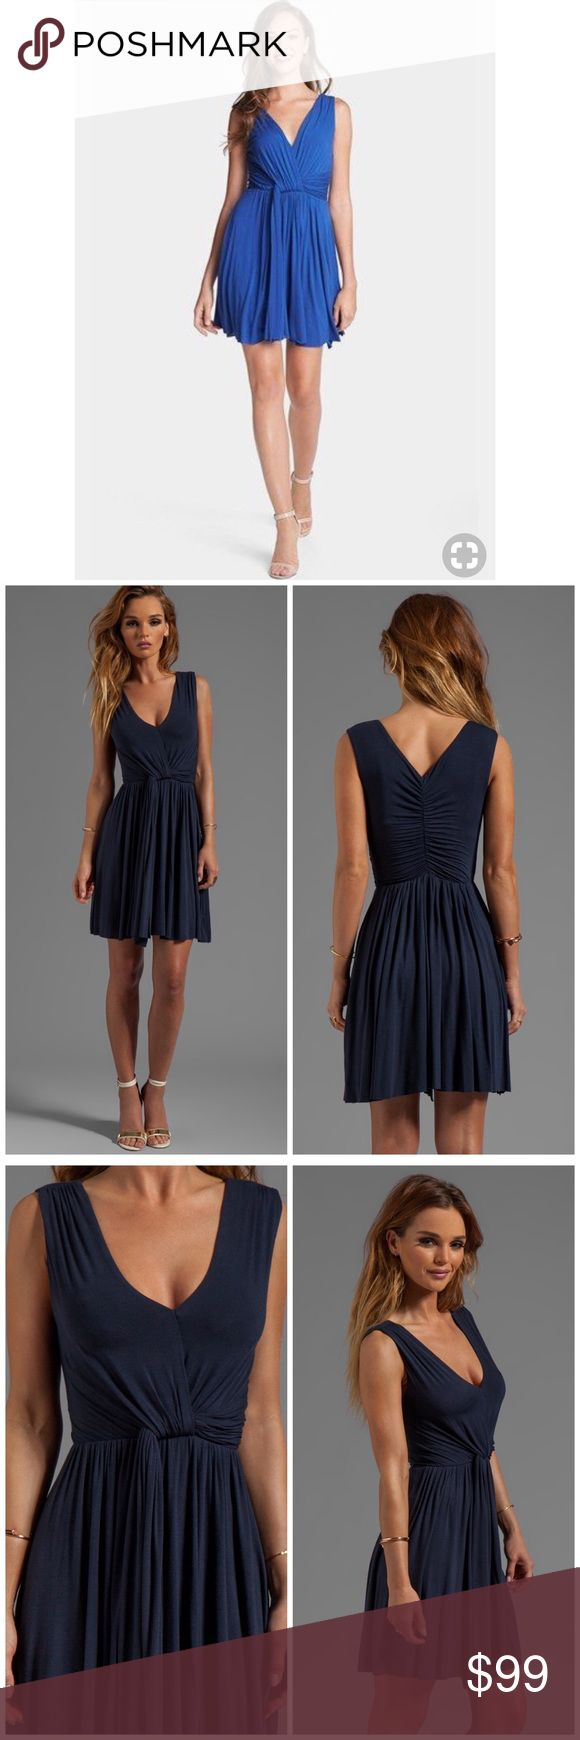 """Bailey 44 Madrigal Pleated Dress in Blue New with tags. 94% rayon 6% spandex. Approx 34"""" length. Fully lined. Ruched, draping detail. Shirred back seam. Raw cut hem. Offers welcome through offers tab. No trades. 10825171101 Bailey 44 Dresses"""